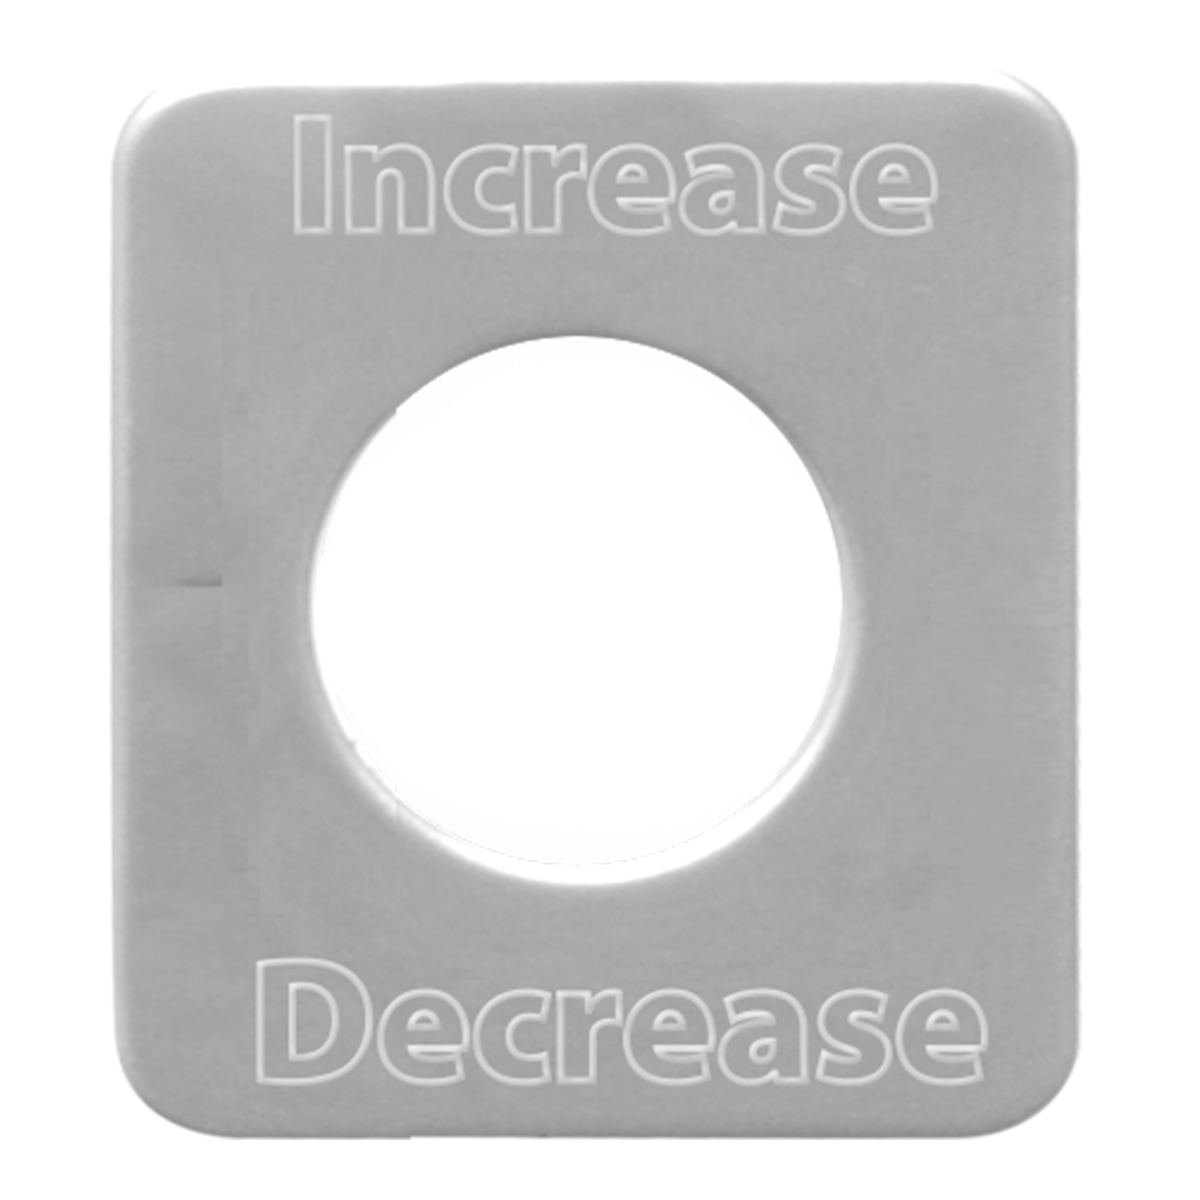 68581 Stainless Steel Increase/Decrease Switch Plate for KW